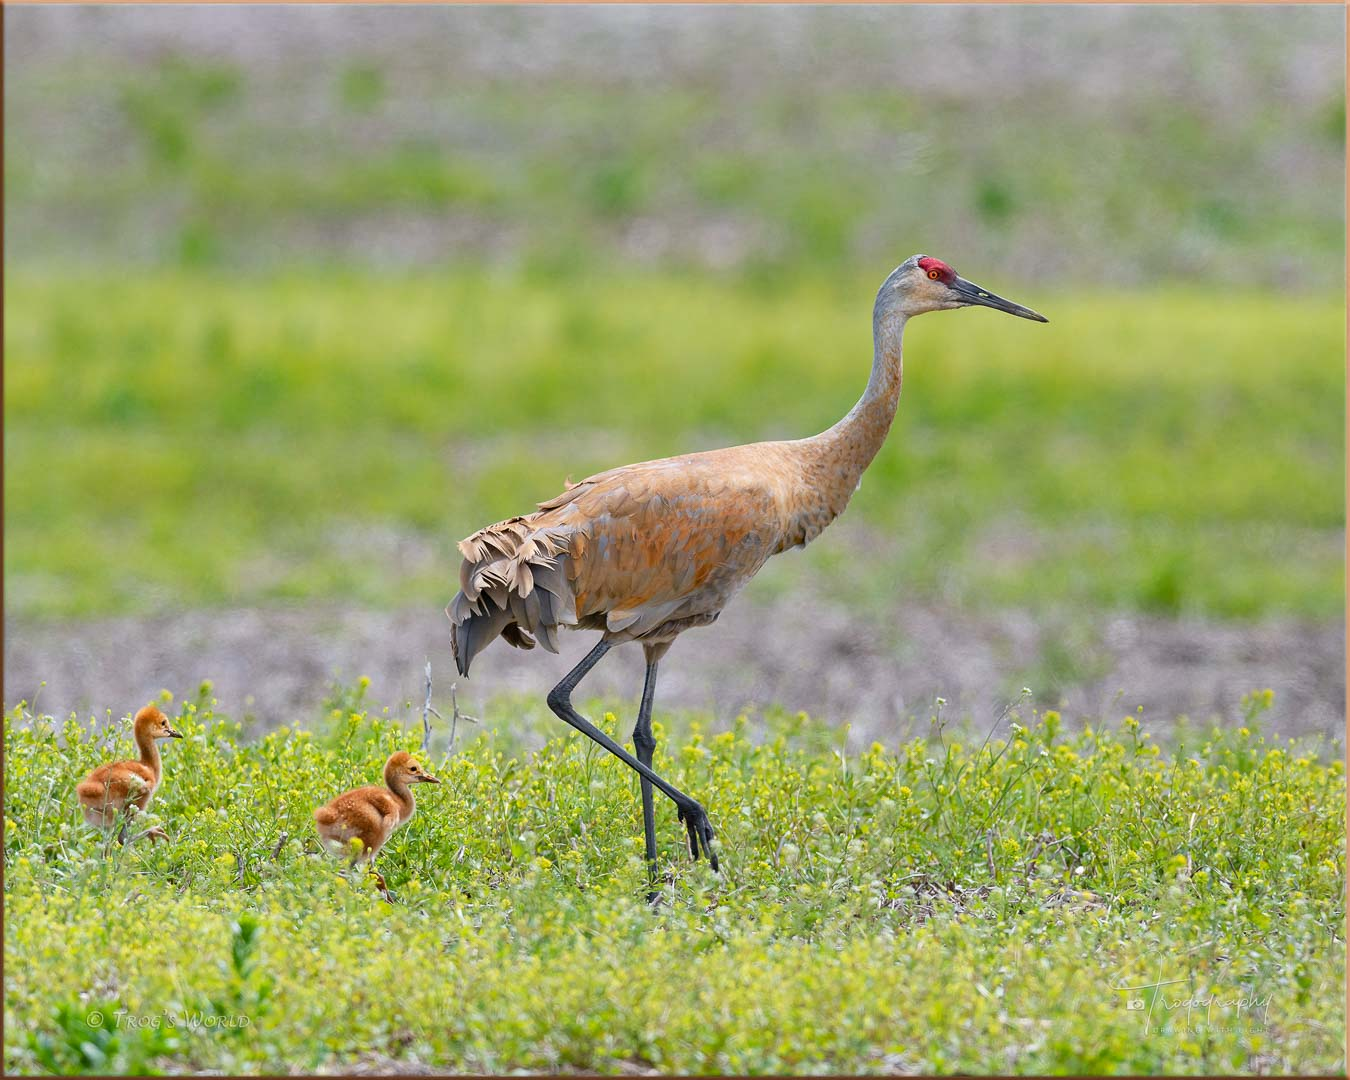 Sandhill Crane with its colts